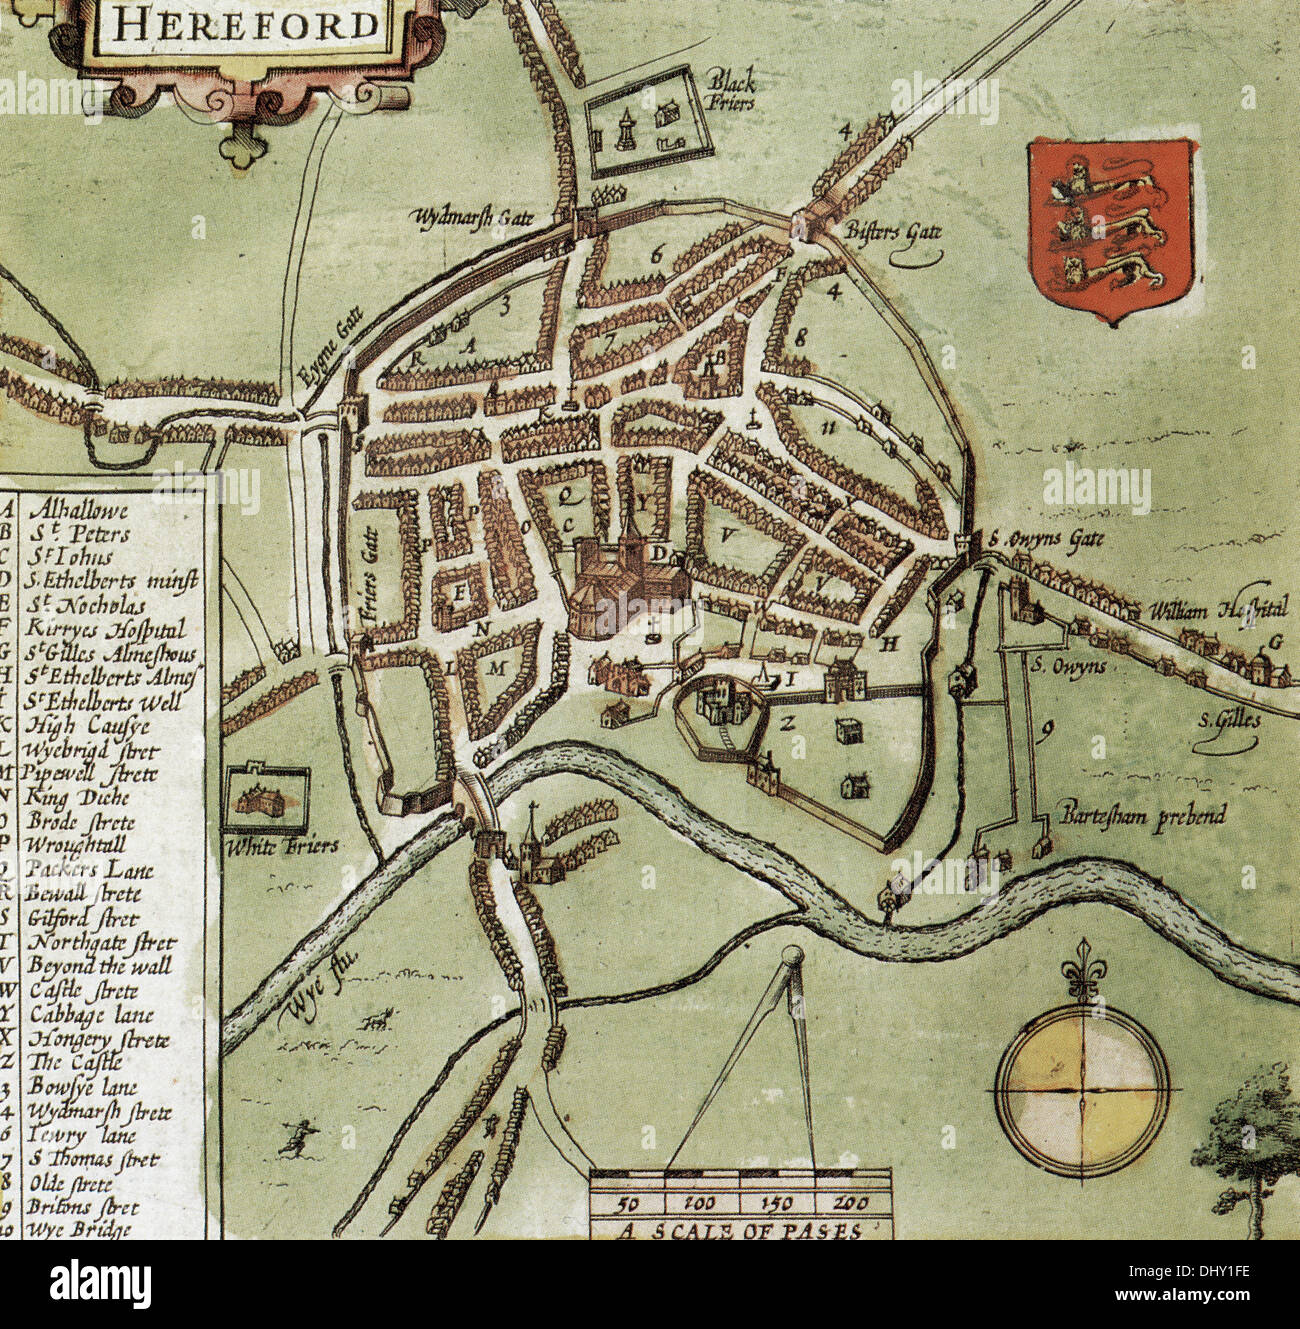 Map Of Hereford Old map of Hereford, England, by John Speed, 1611 Stock Photo